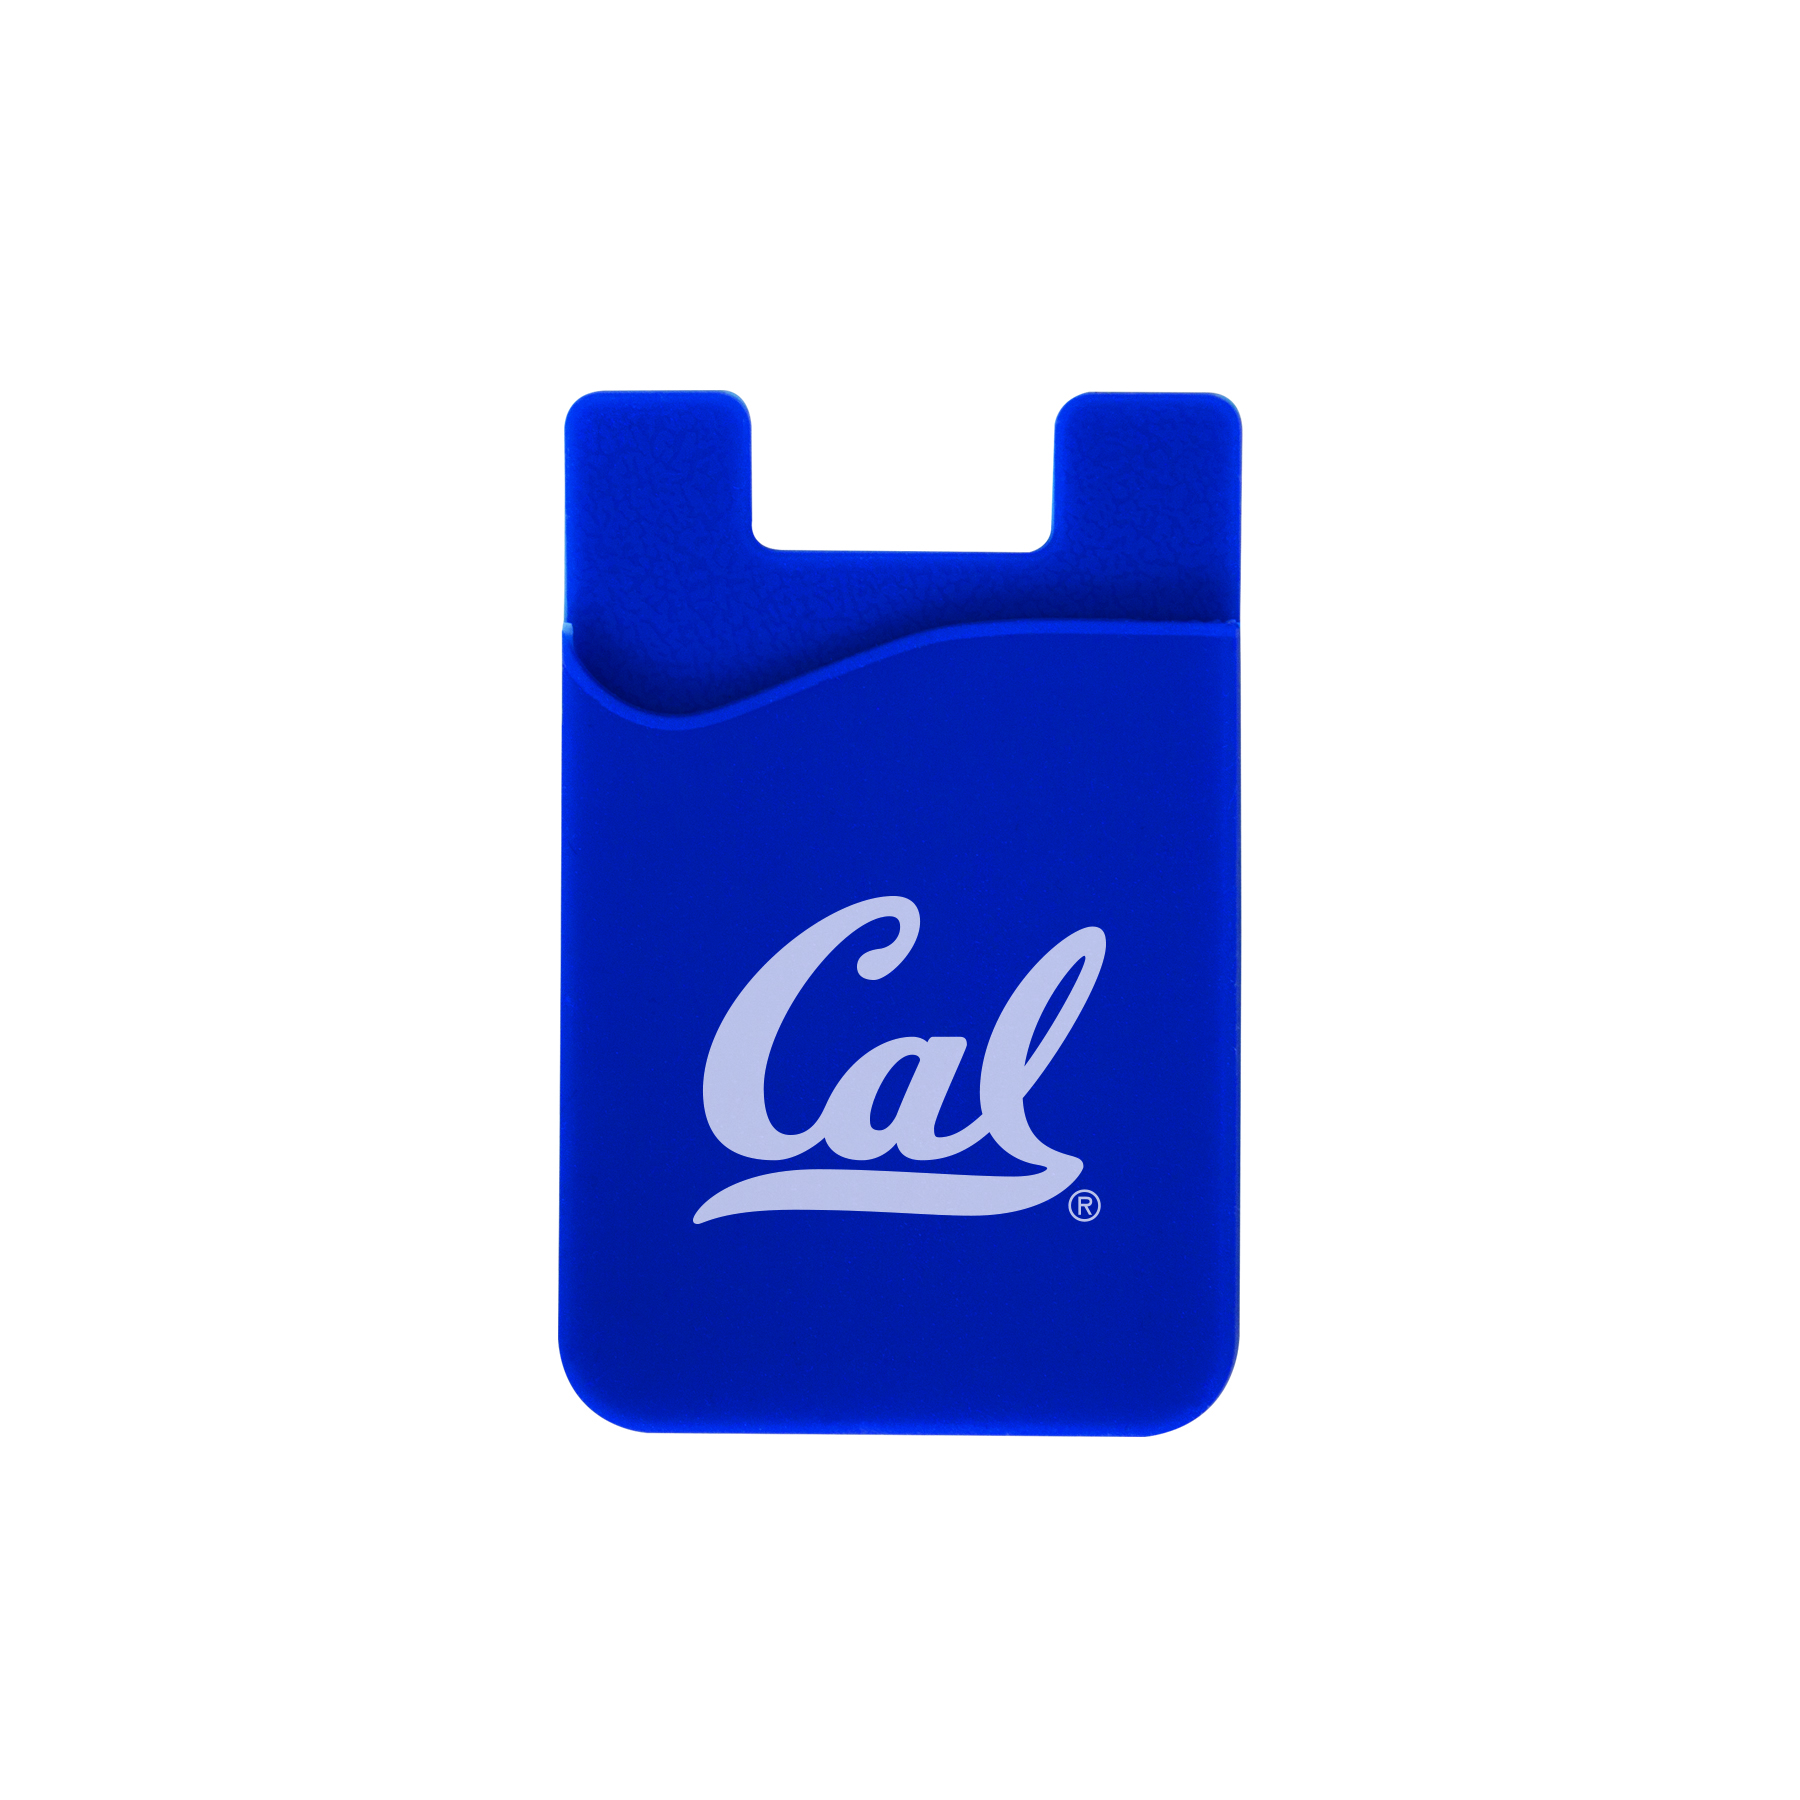 Berkeley Cell Phone Card Holder